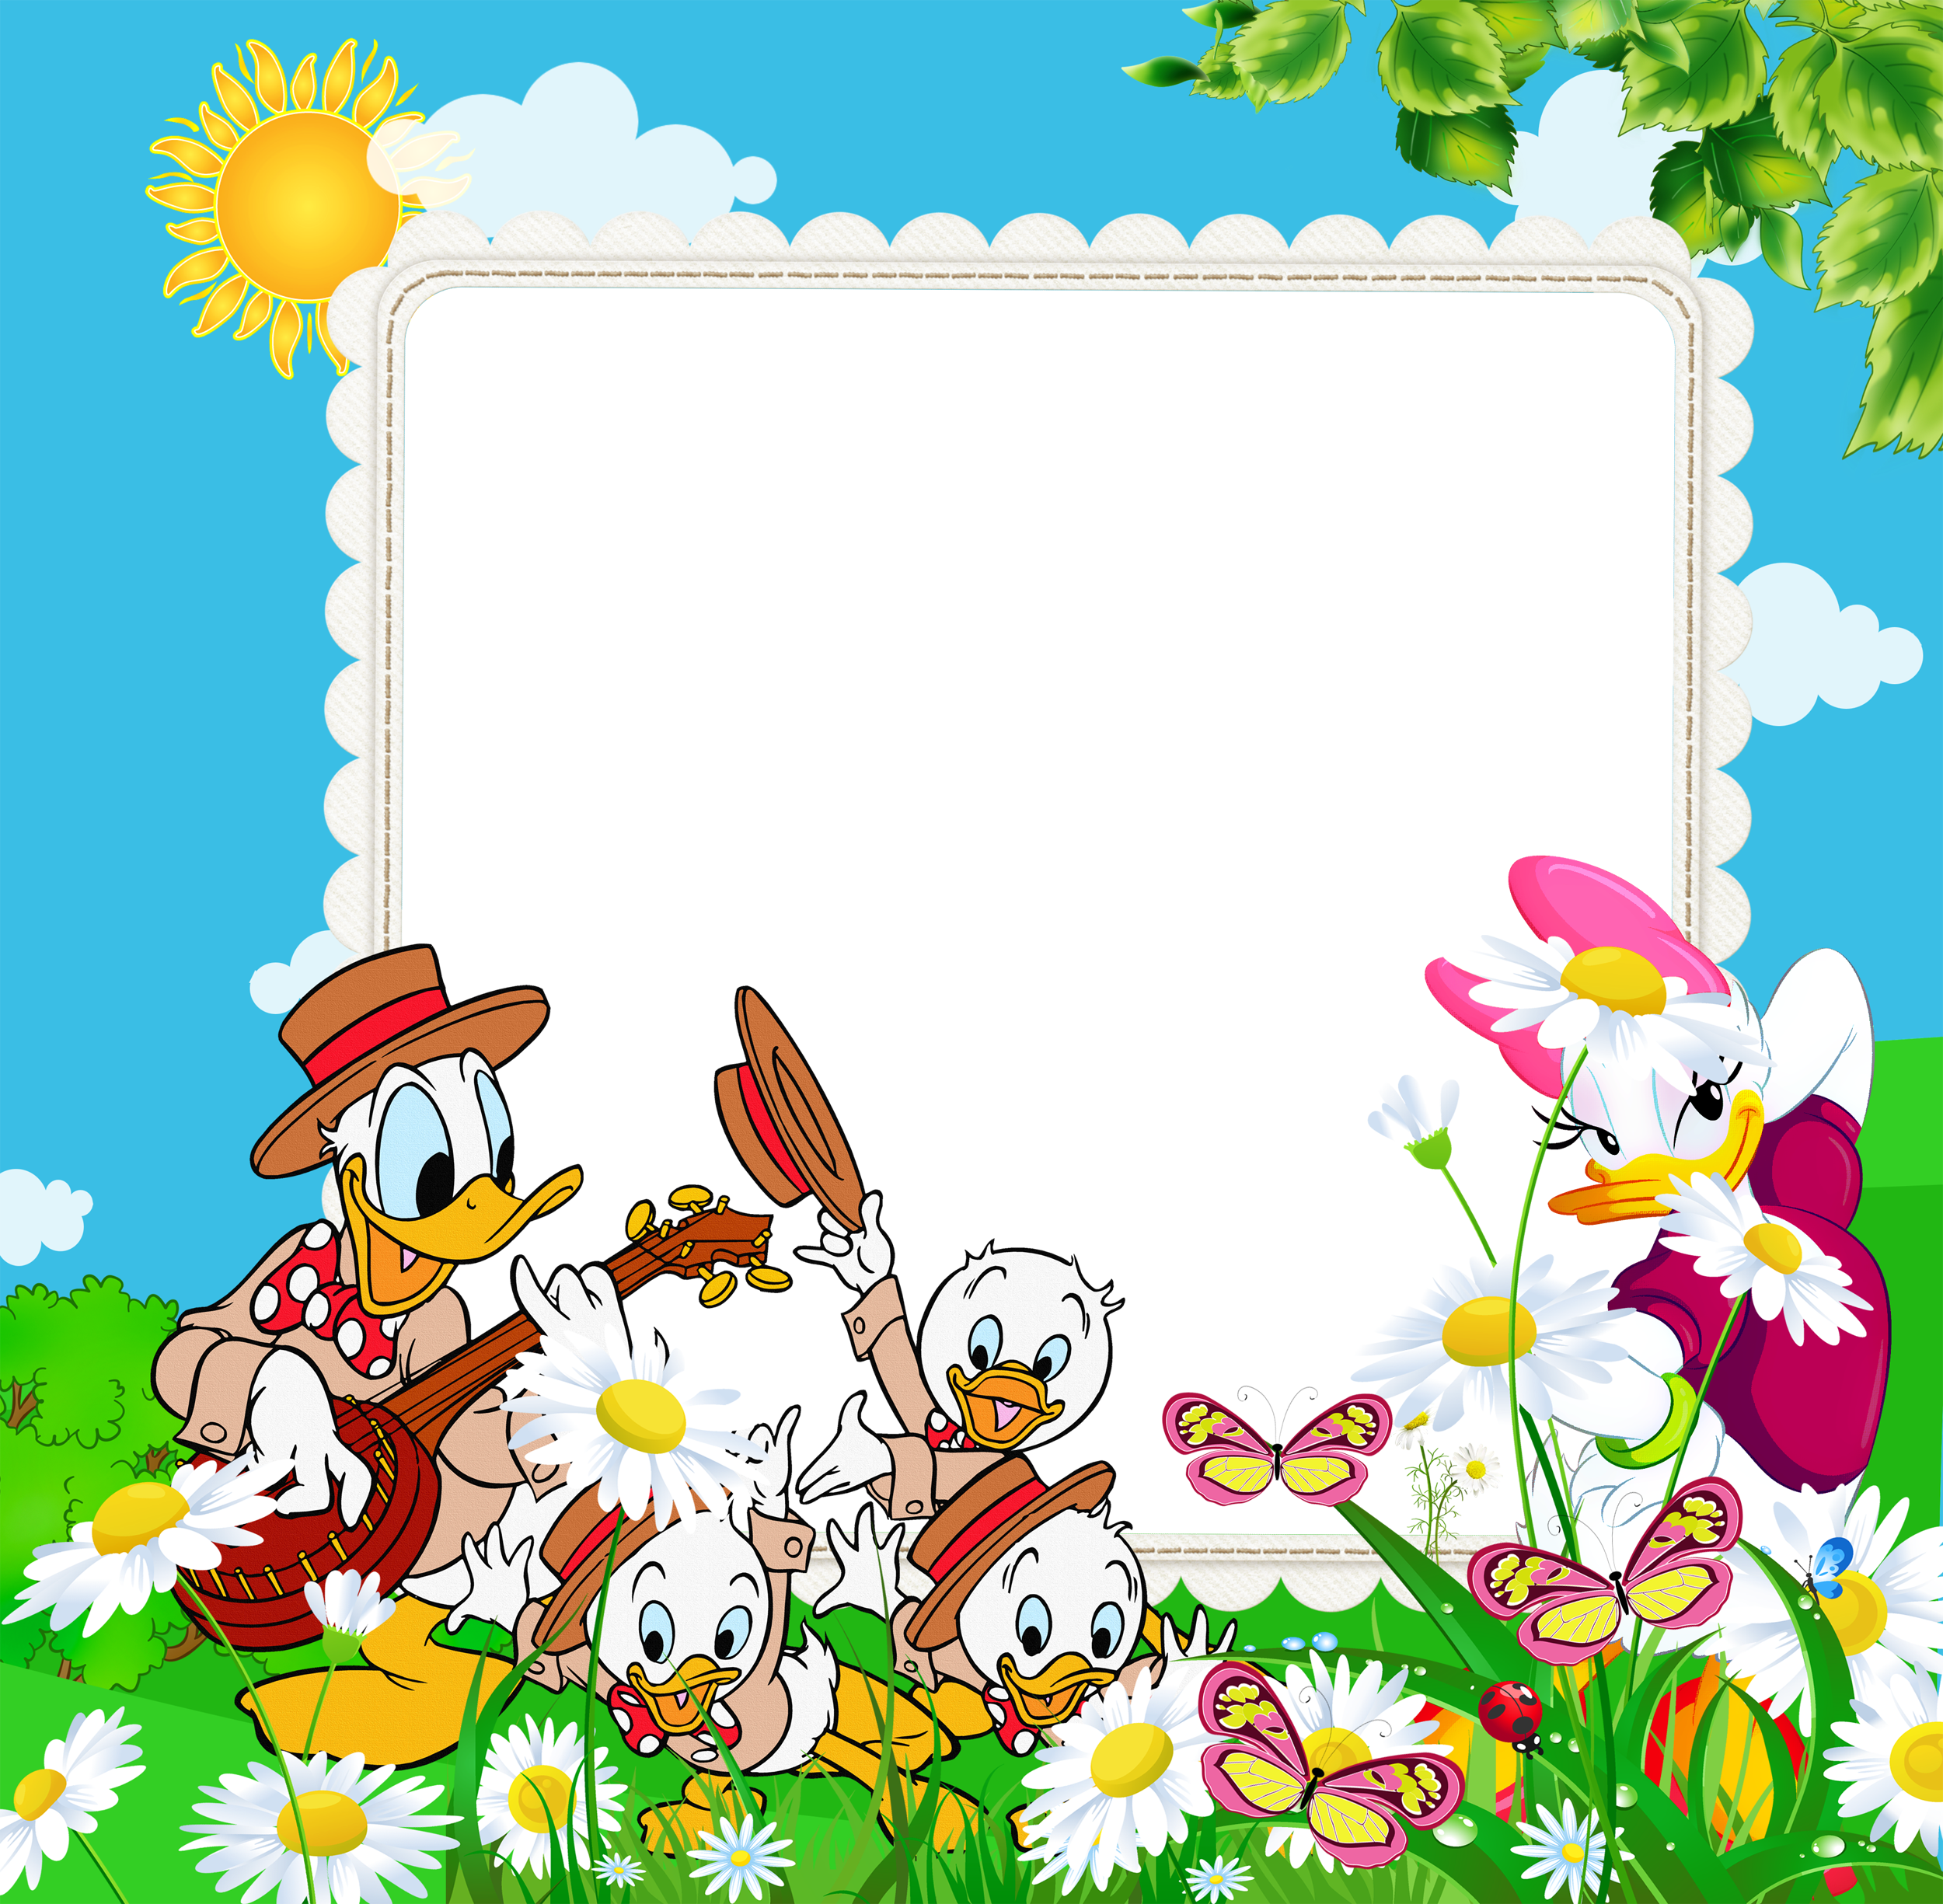 Transparent Kids PNG Frame with Ducks.